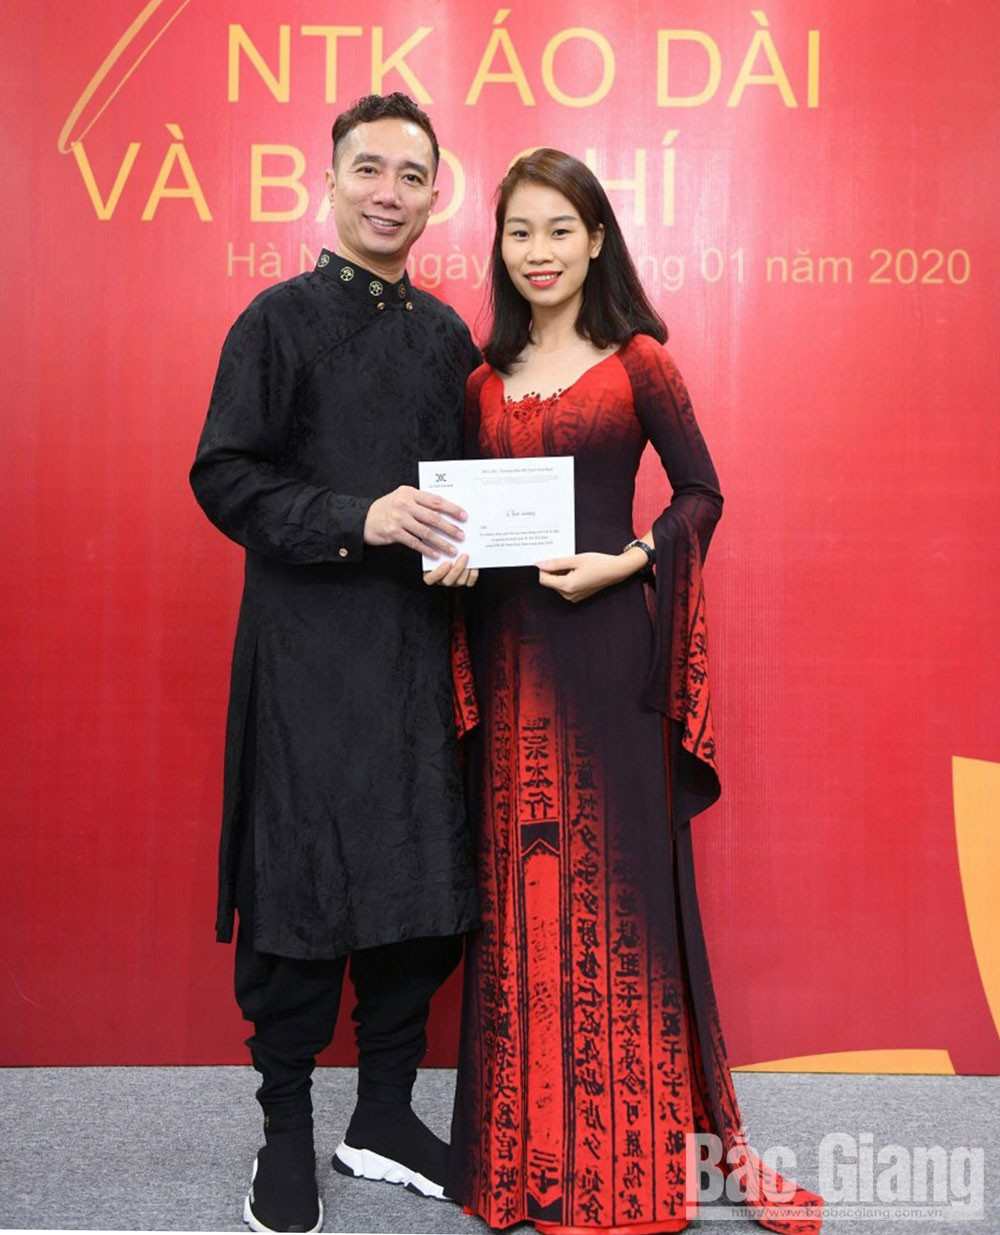 Tailor, woodblock-printed ao dai, Bac Giang province, Nguyen Thi Huyen, traditional long dress, innate talent, young designer, teaching assistant